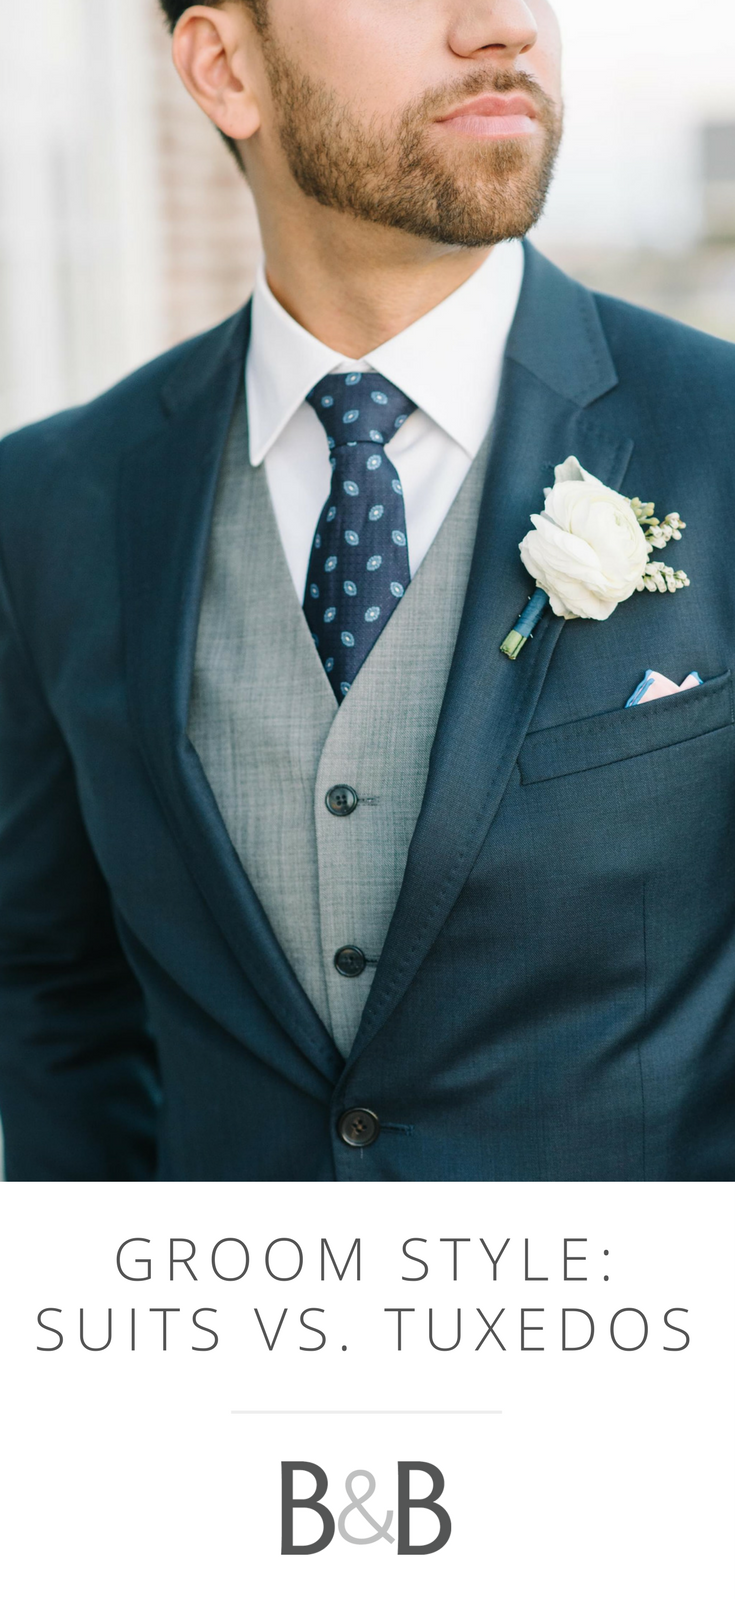 The Smarter Way to Wed | Weddings, Wedding and Groom style